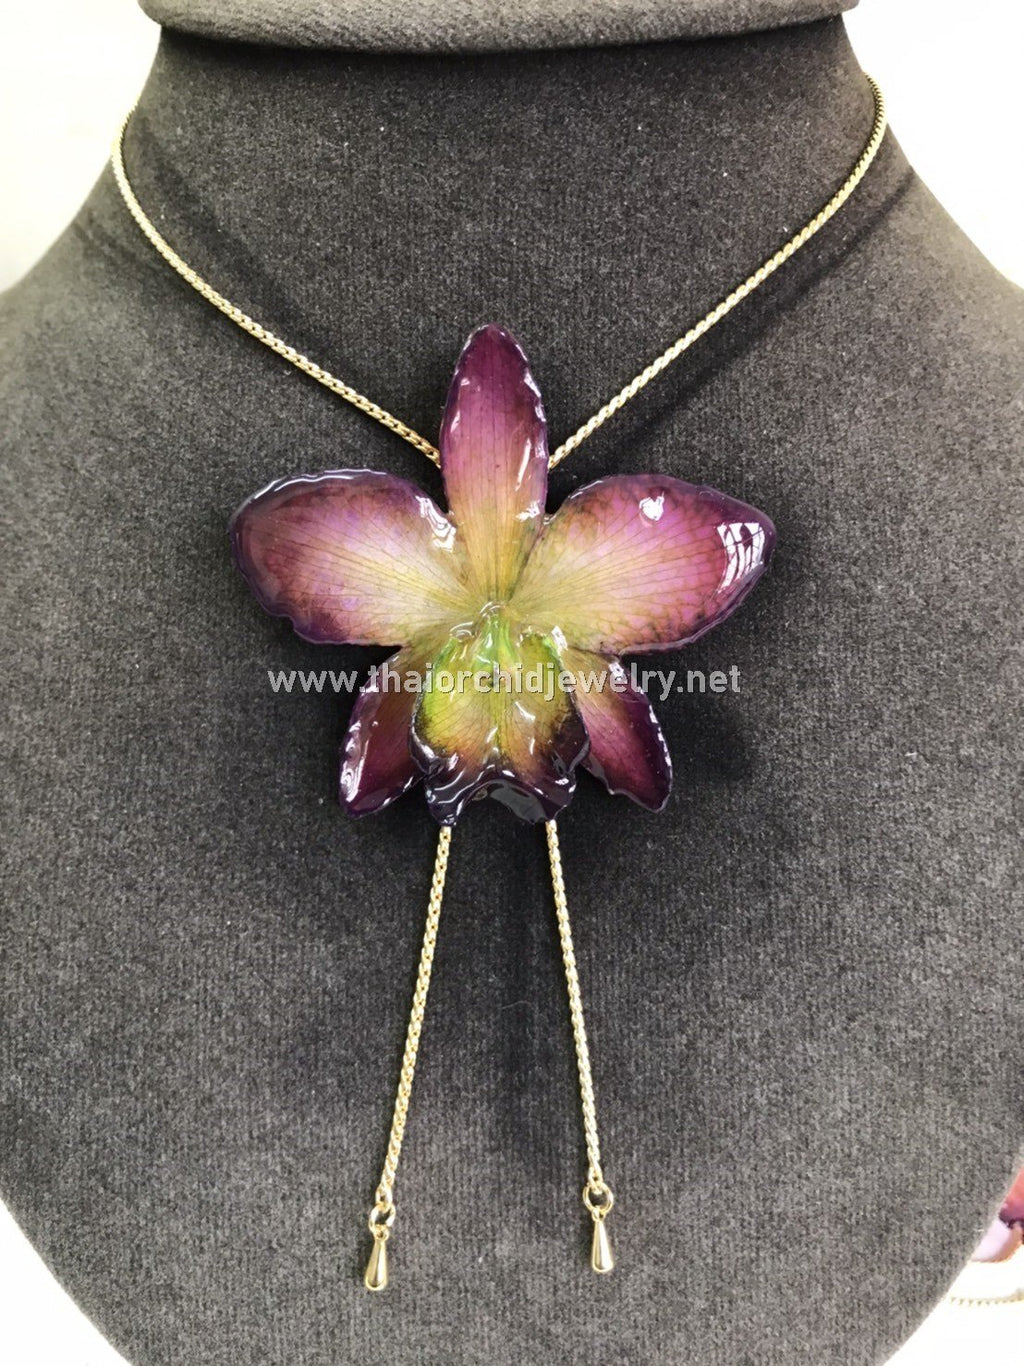 Cattleya Orchid Jewelry Slider Necklace Gold Plated 24K - Purple Green